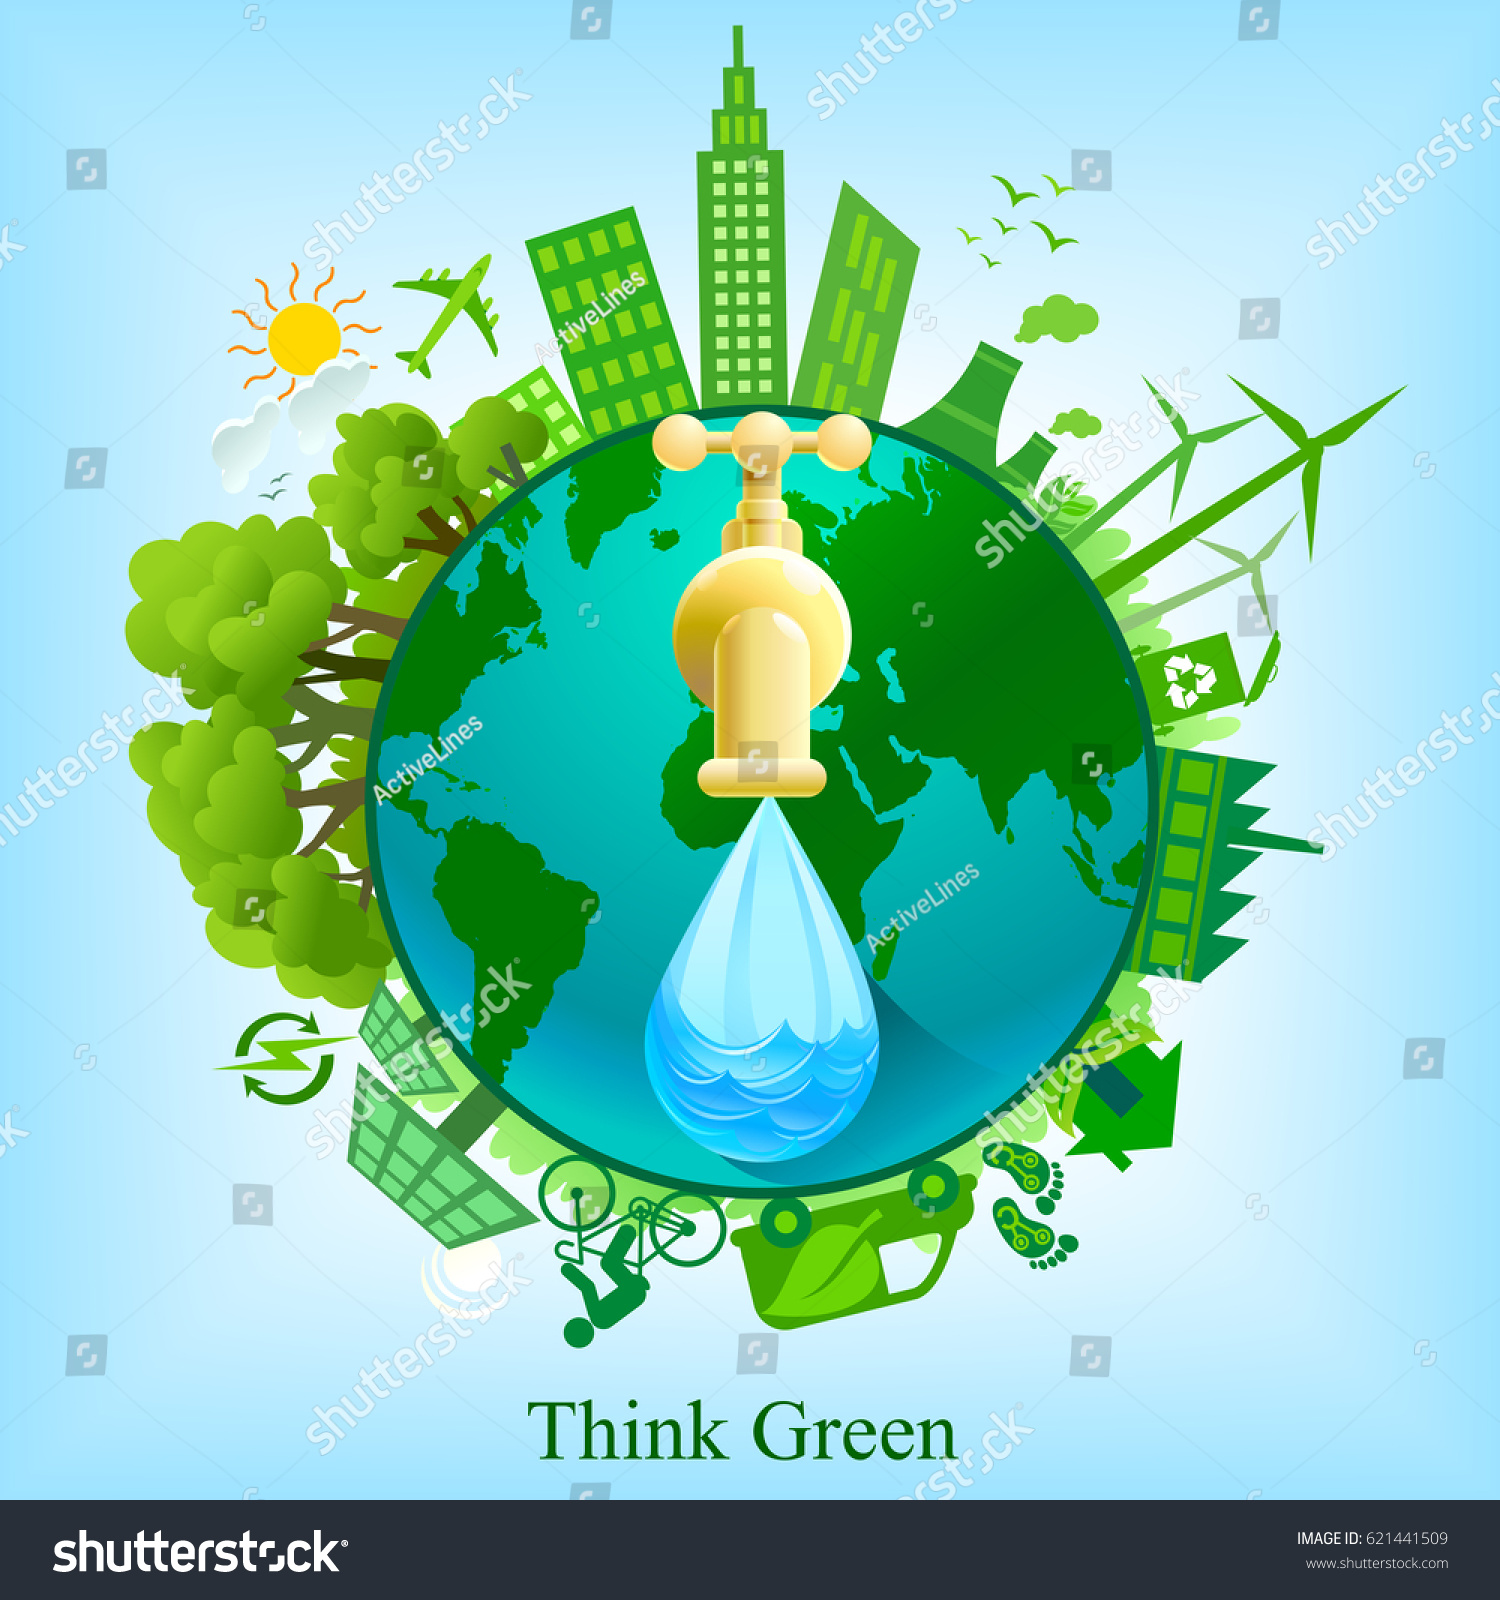 Earth Day Celebration Illustration Green Energy Stock Vector